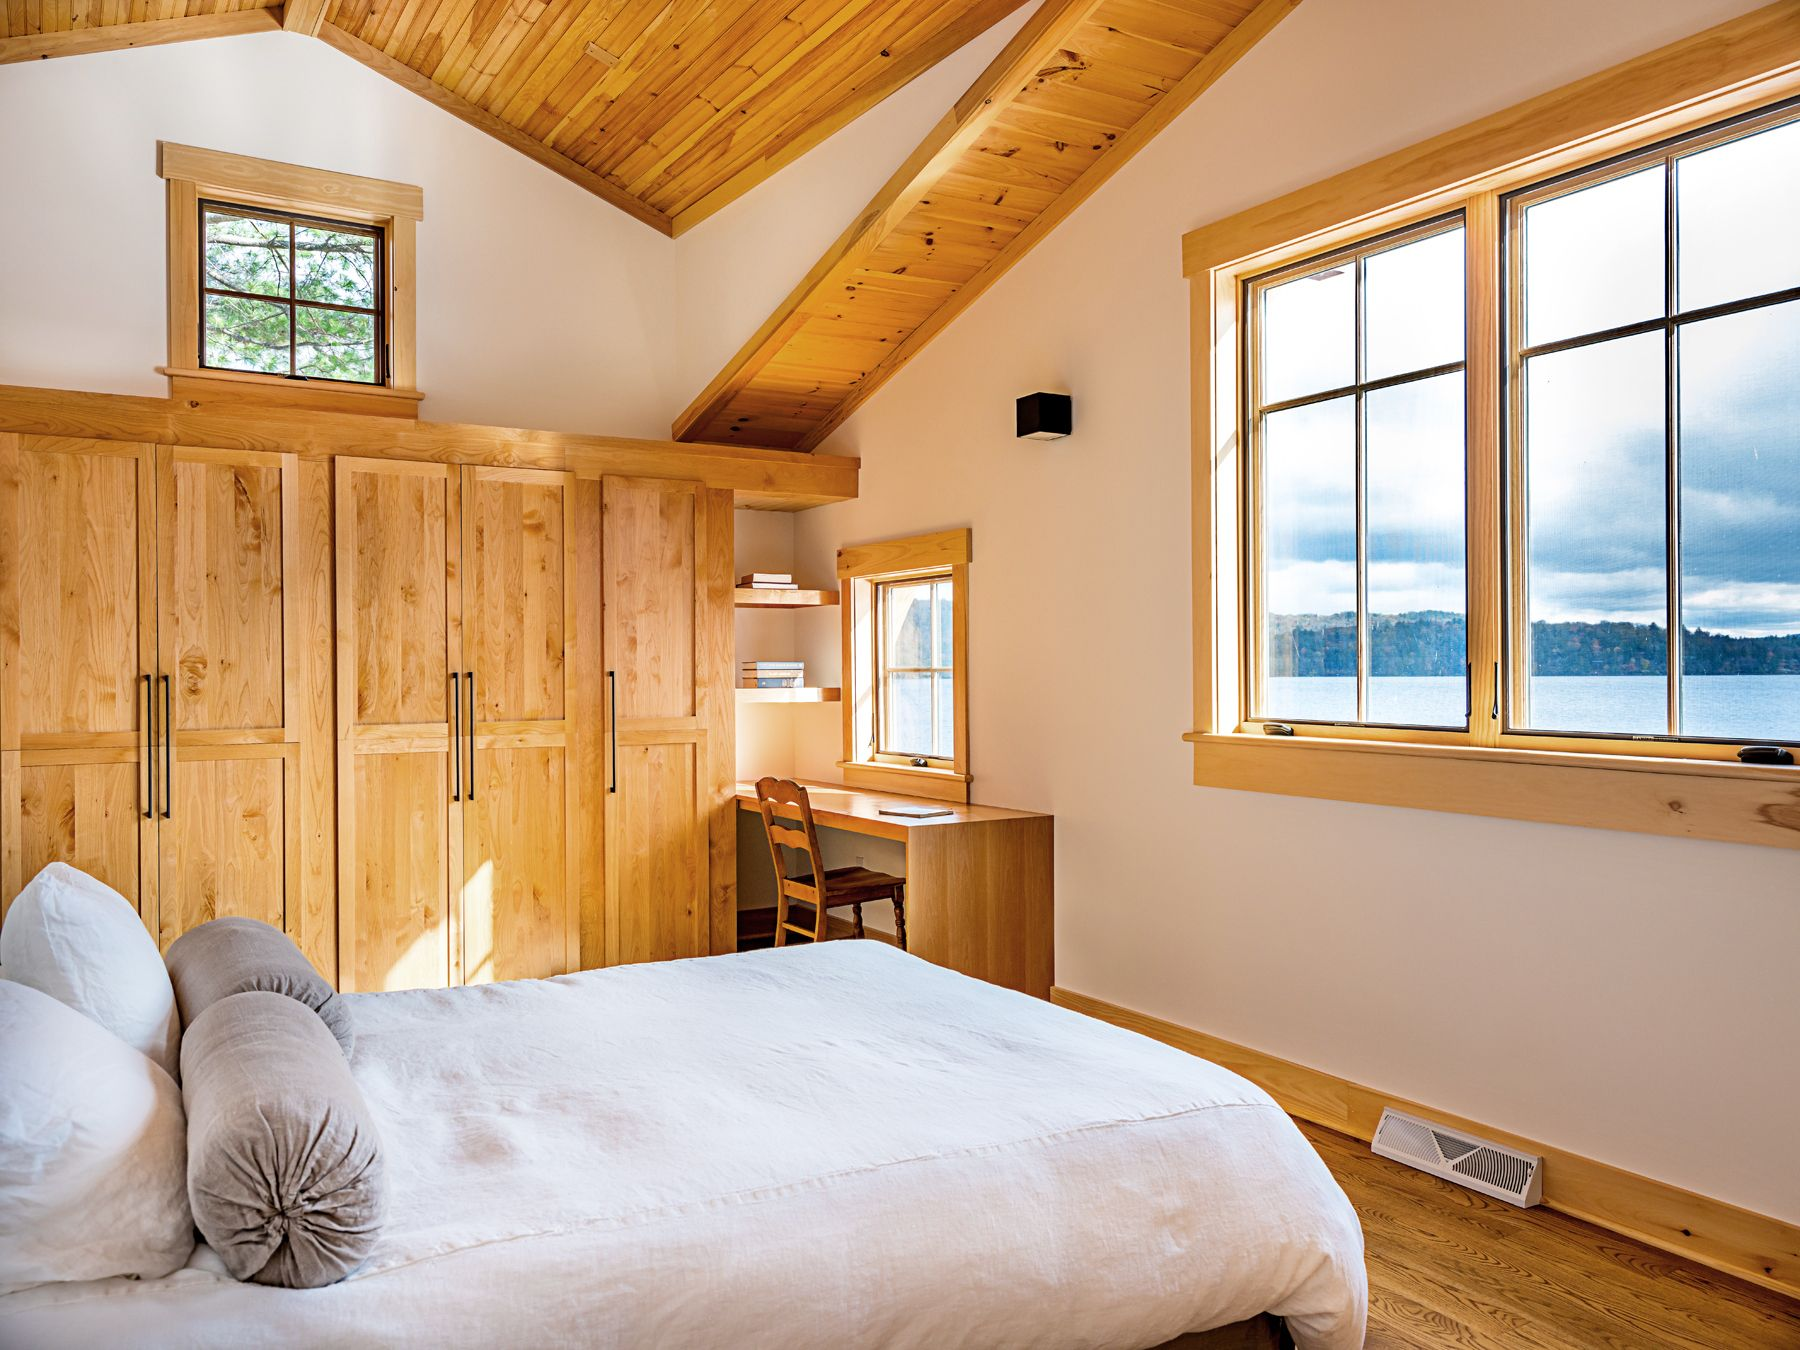 The Perfect Guest Bedroom With A Lake View Blonde Wood And White Walls Architecture And Interior Design By P Interior Design Bedroom Inspirations White Walls Lake residence transitional bedroom